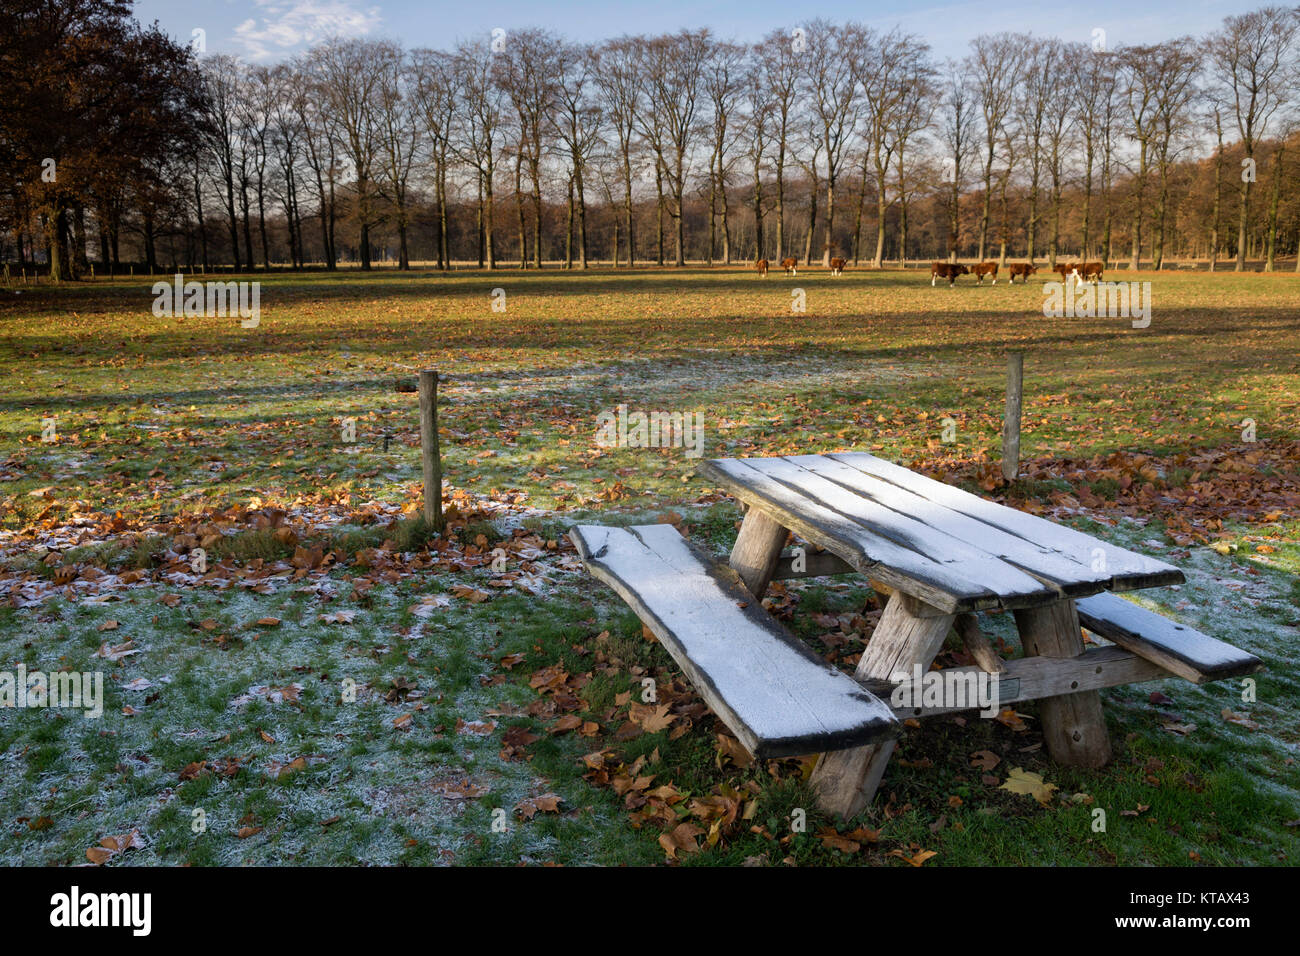 Riped picnic bench near Hernen castle in the Dutch province Gelderland Stock Photo